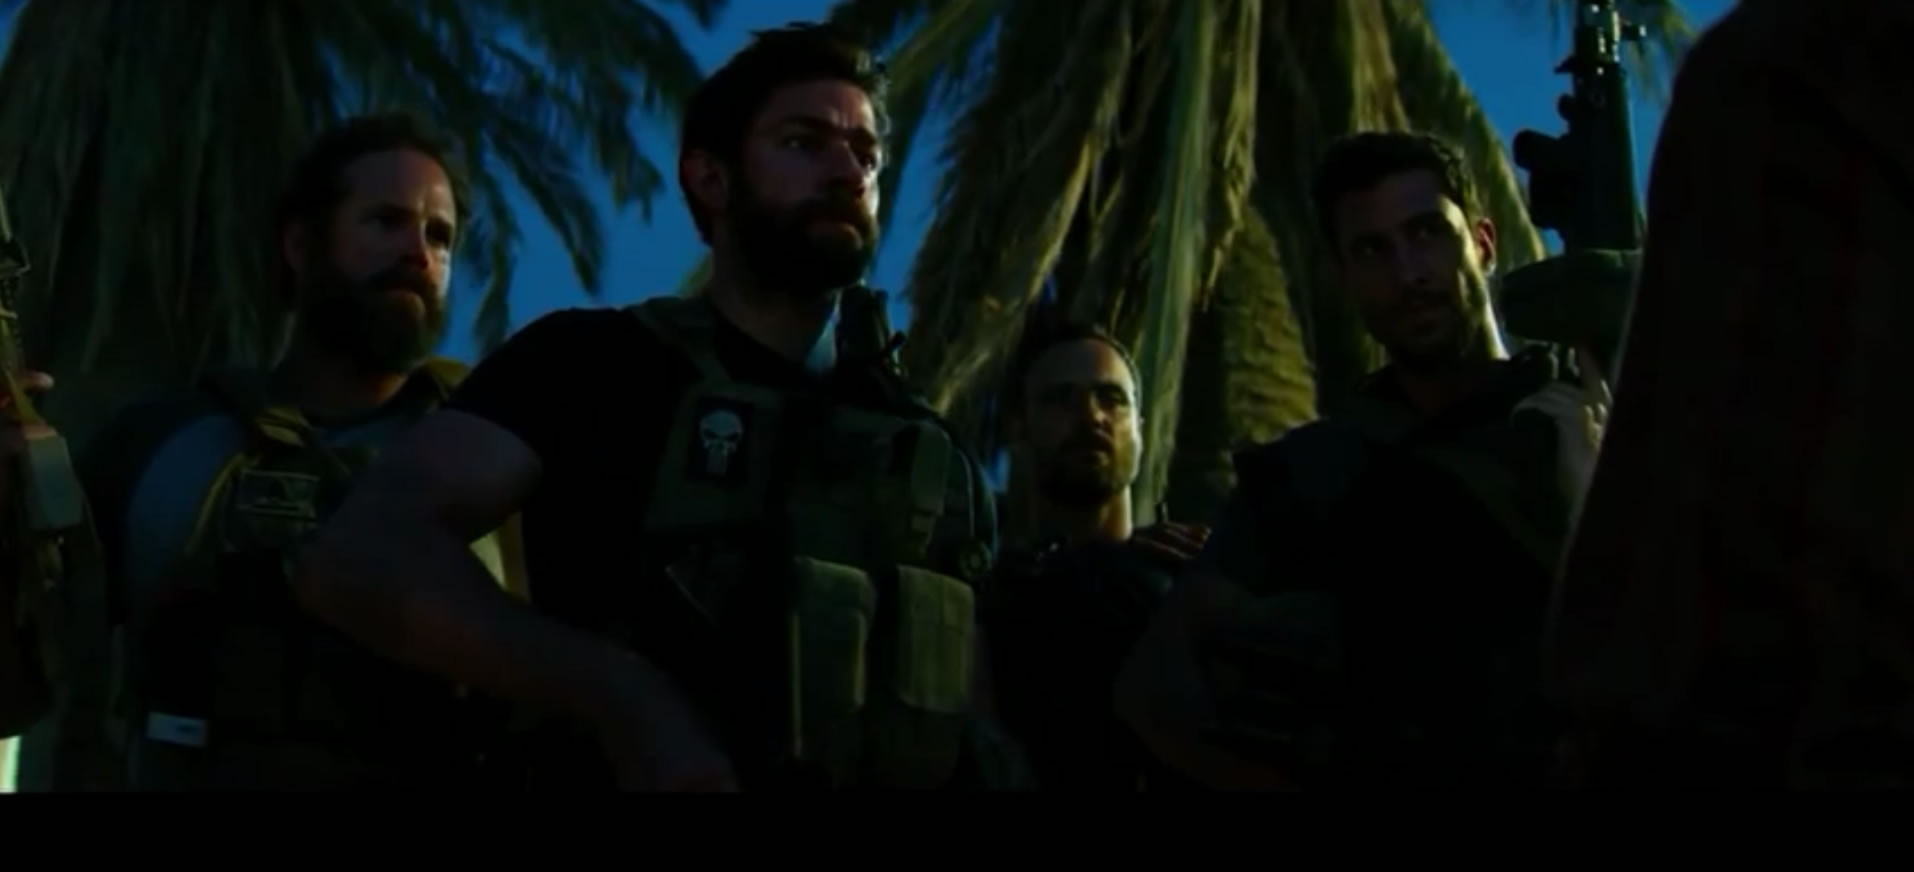 13 HOURS - THE SECRET SOLDIERS OF BENGHAZI-29Julho2015-03